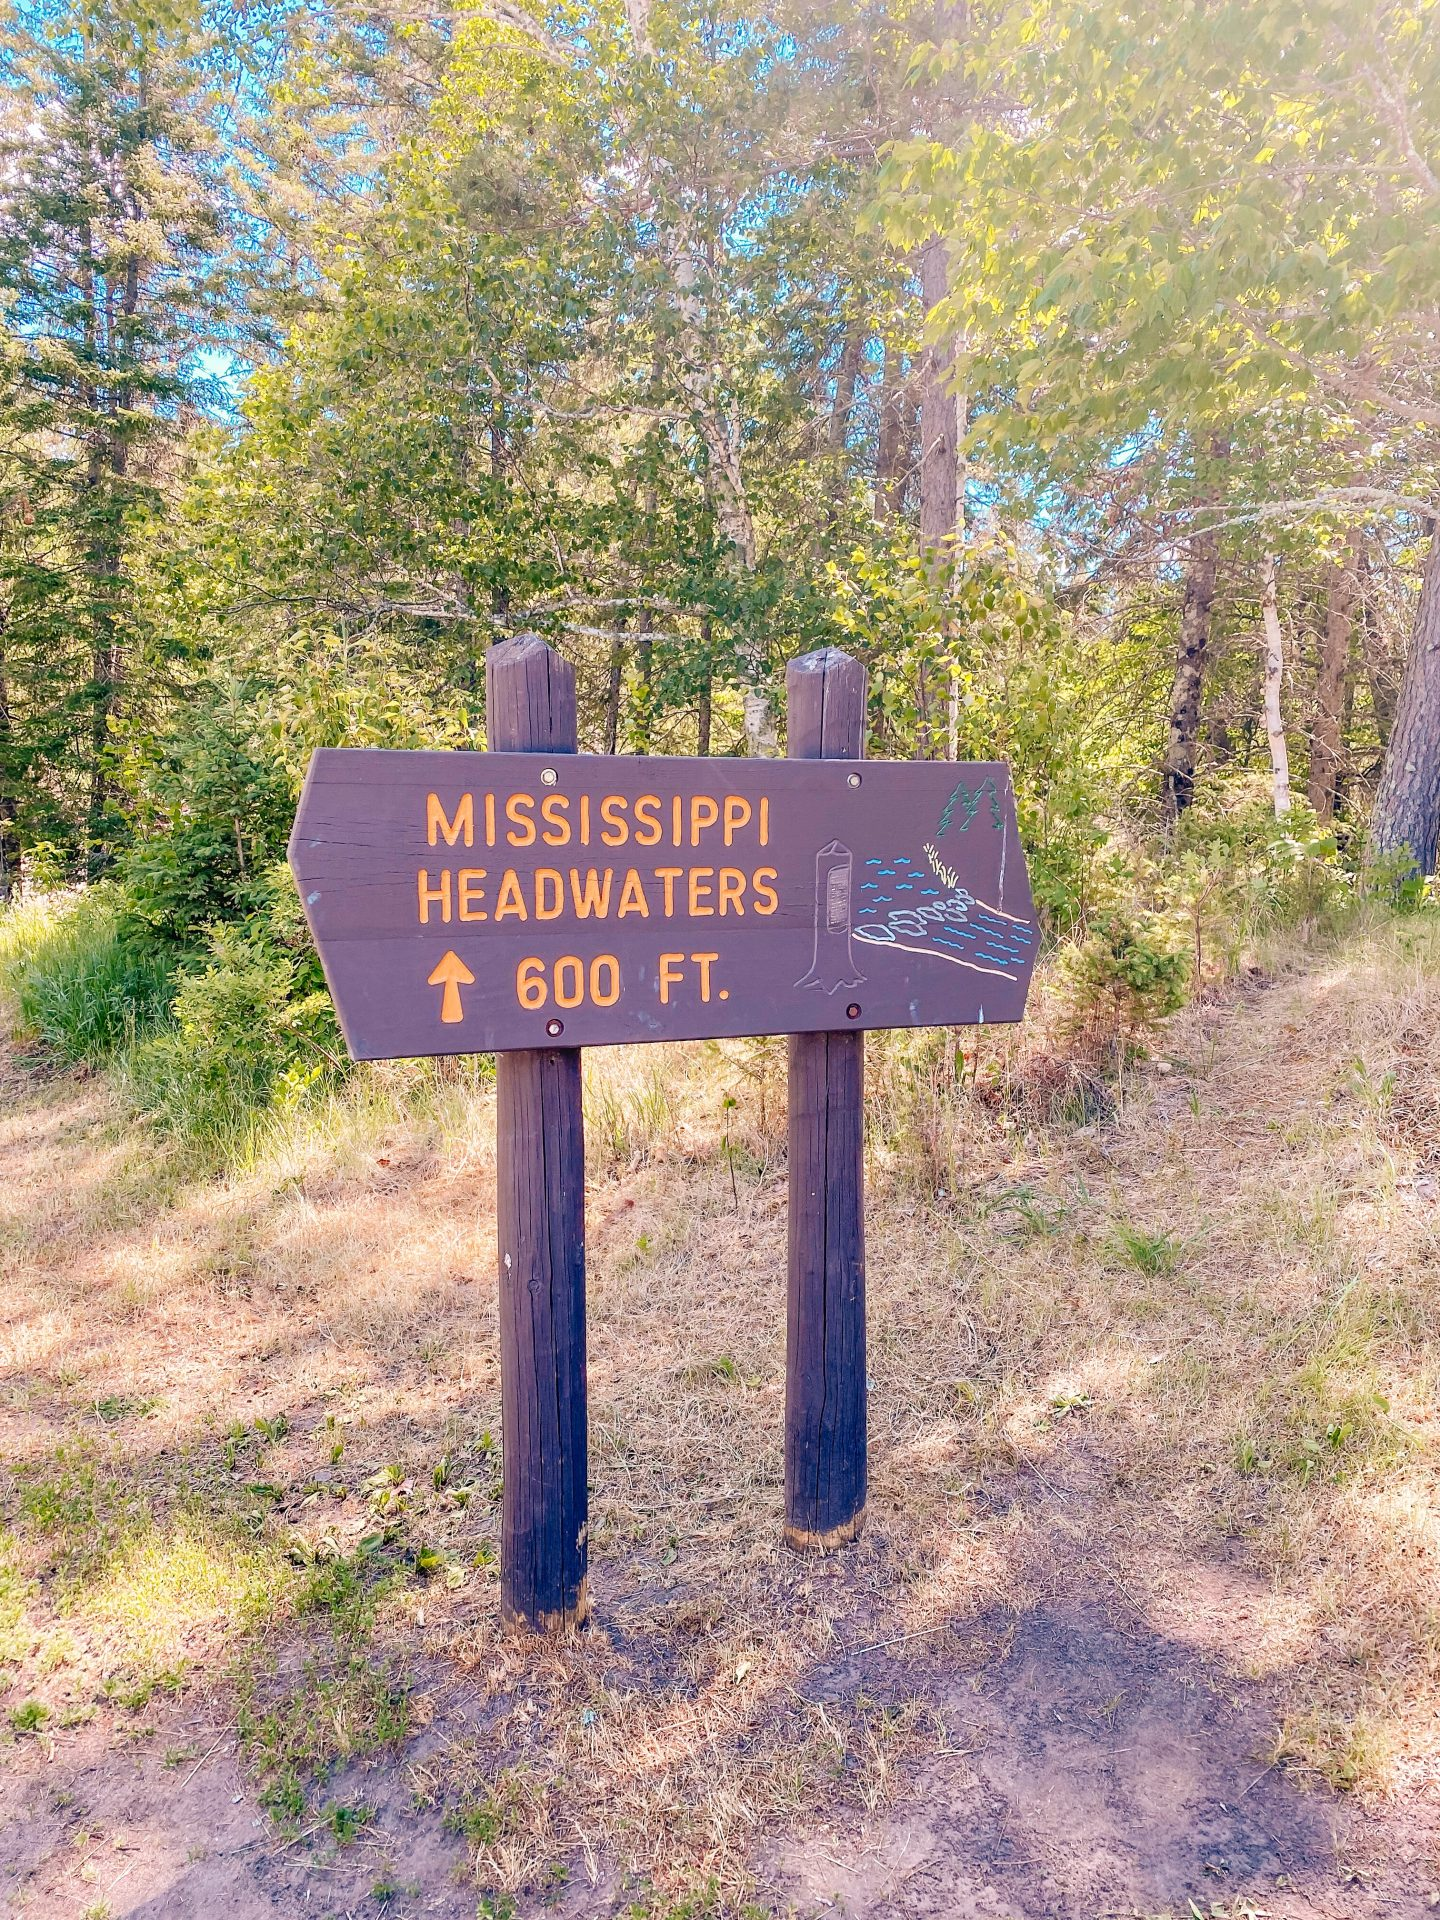 Sign along the path to the Mississippi headwaters in Minnesota at Itasca State Park